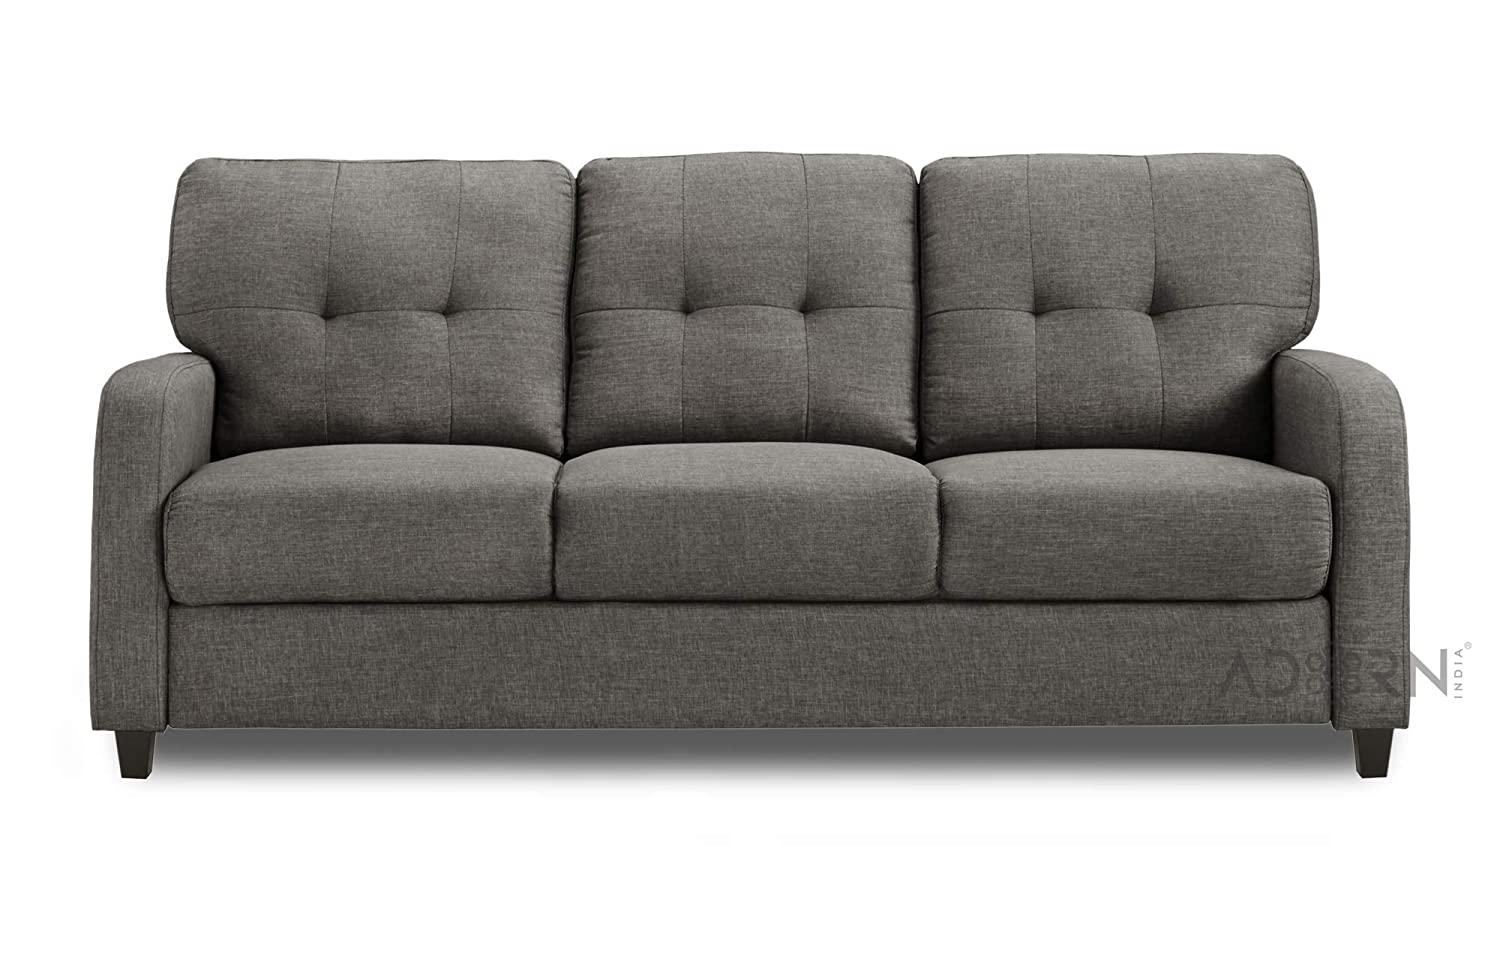 Adorn India Astor Three Seater Sofa (Grey)